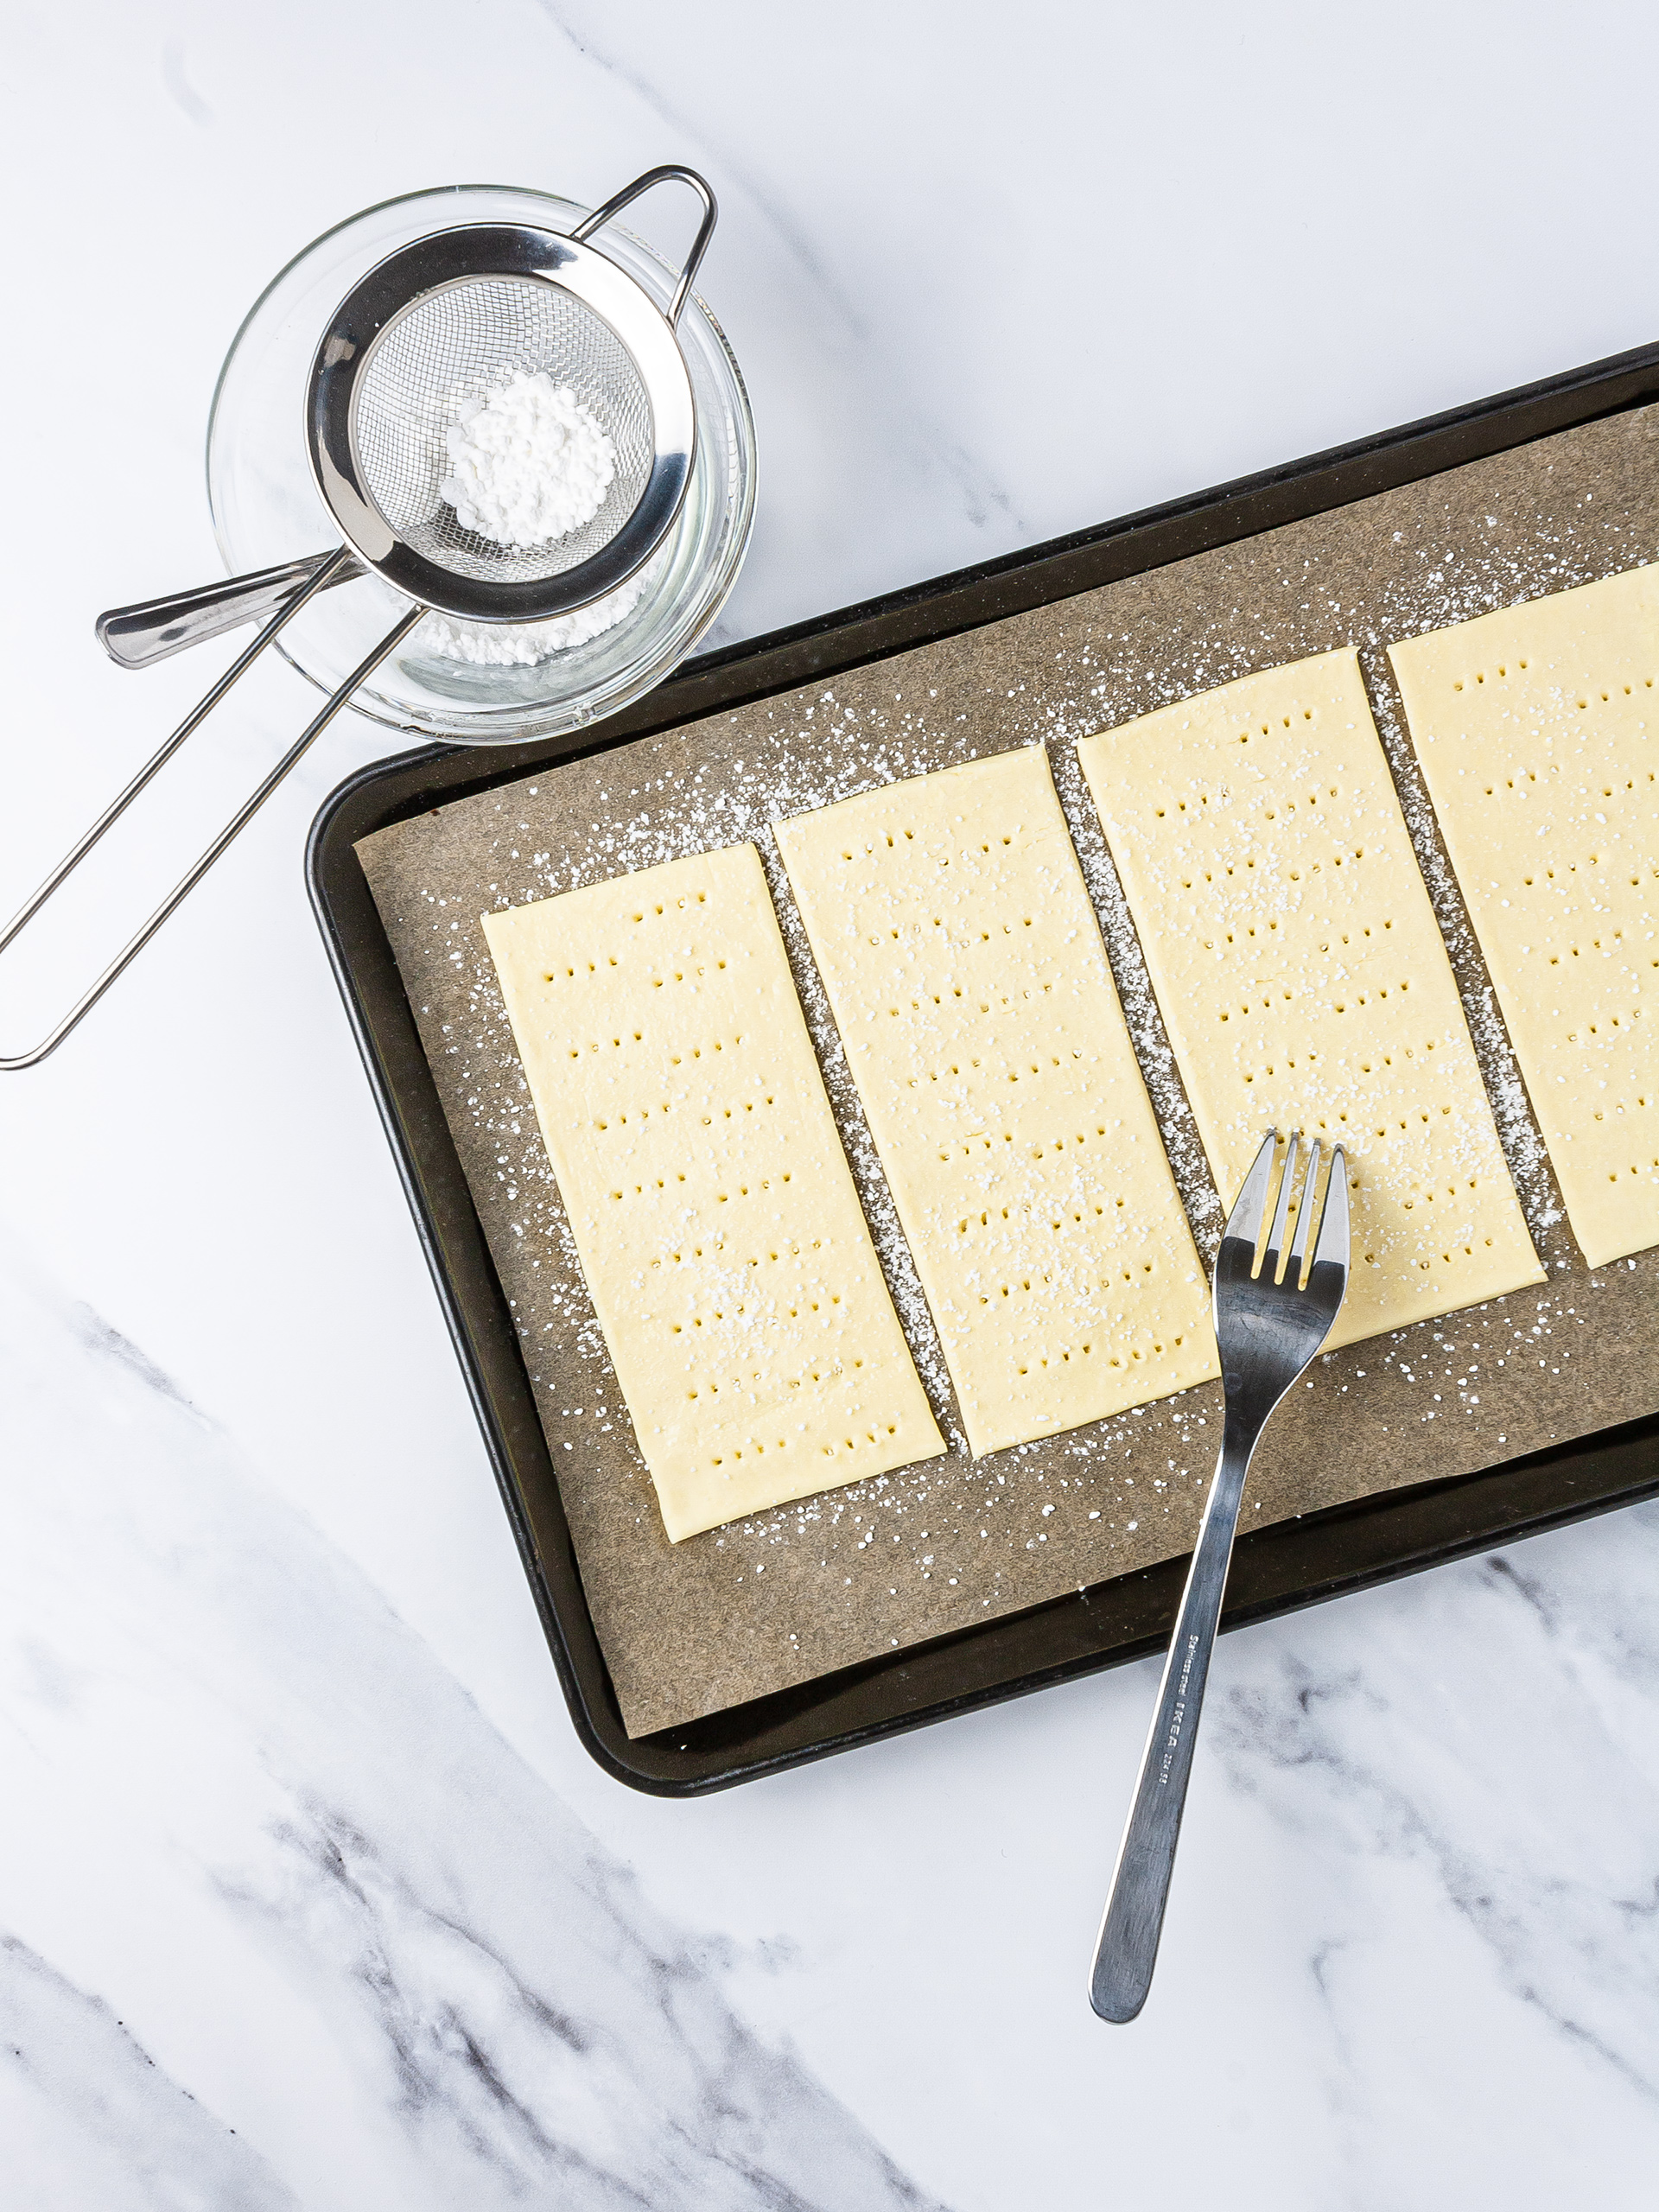 puff pastry sheet in a baking tray poked with a fork